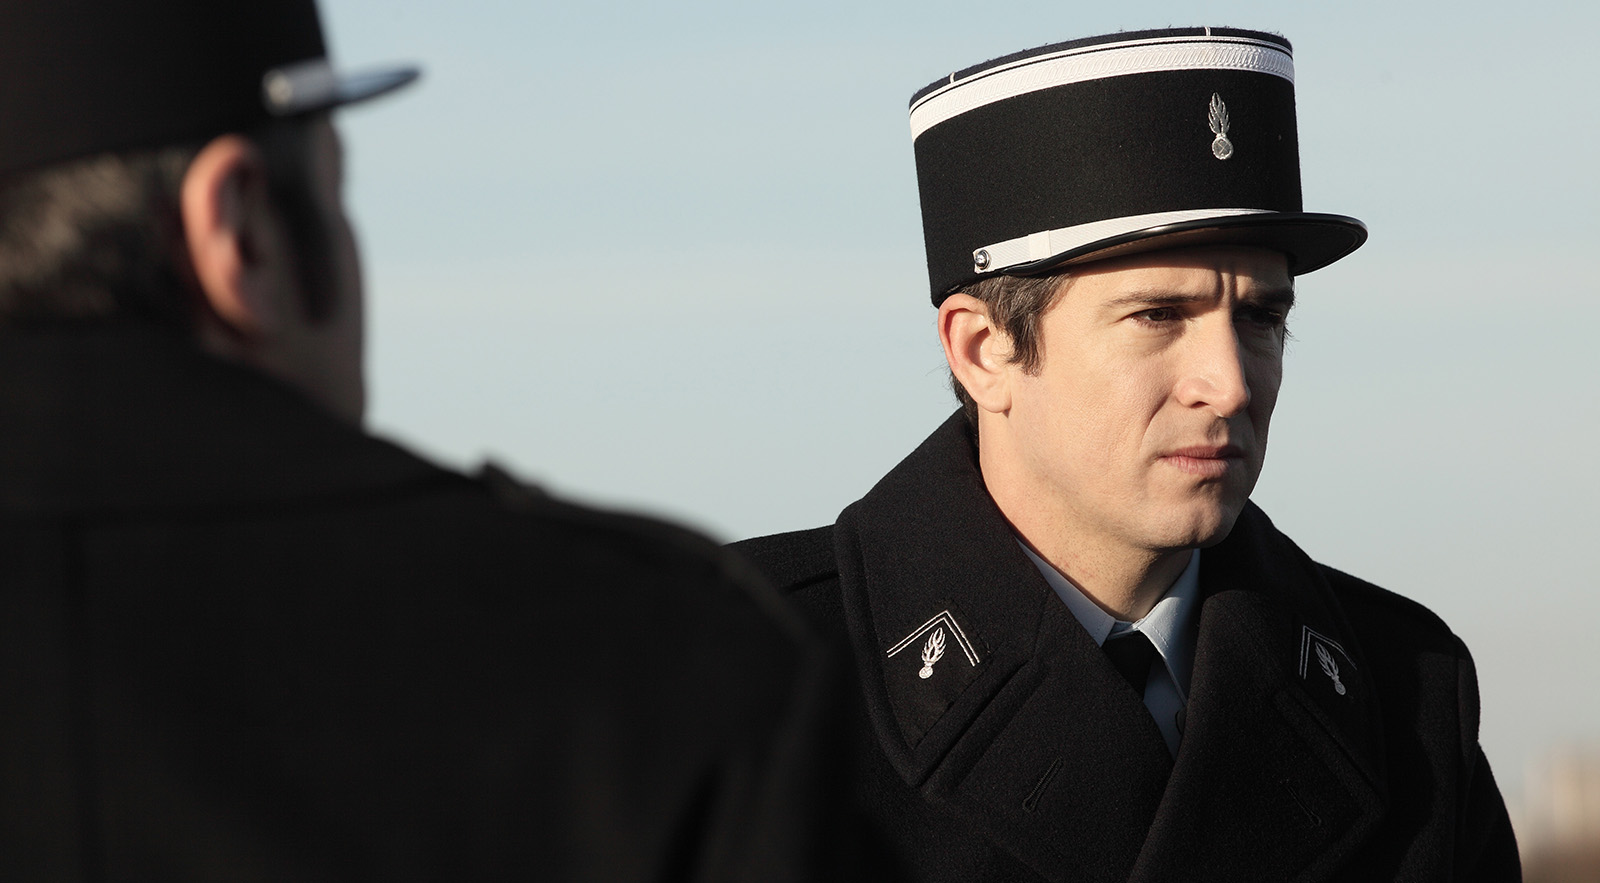 Next time I'll aim for the heart: Guillaume Canet in una scena